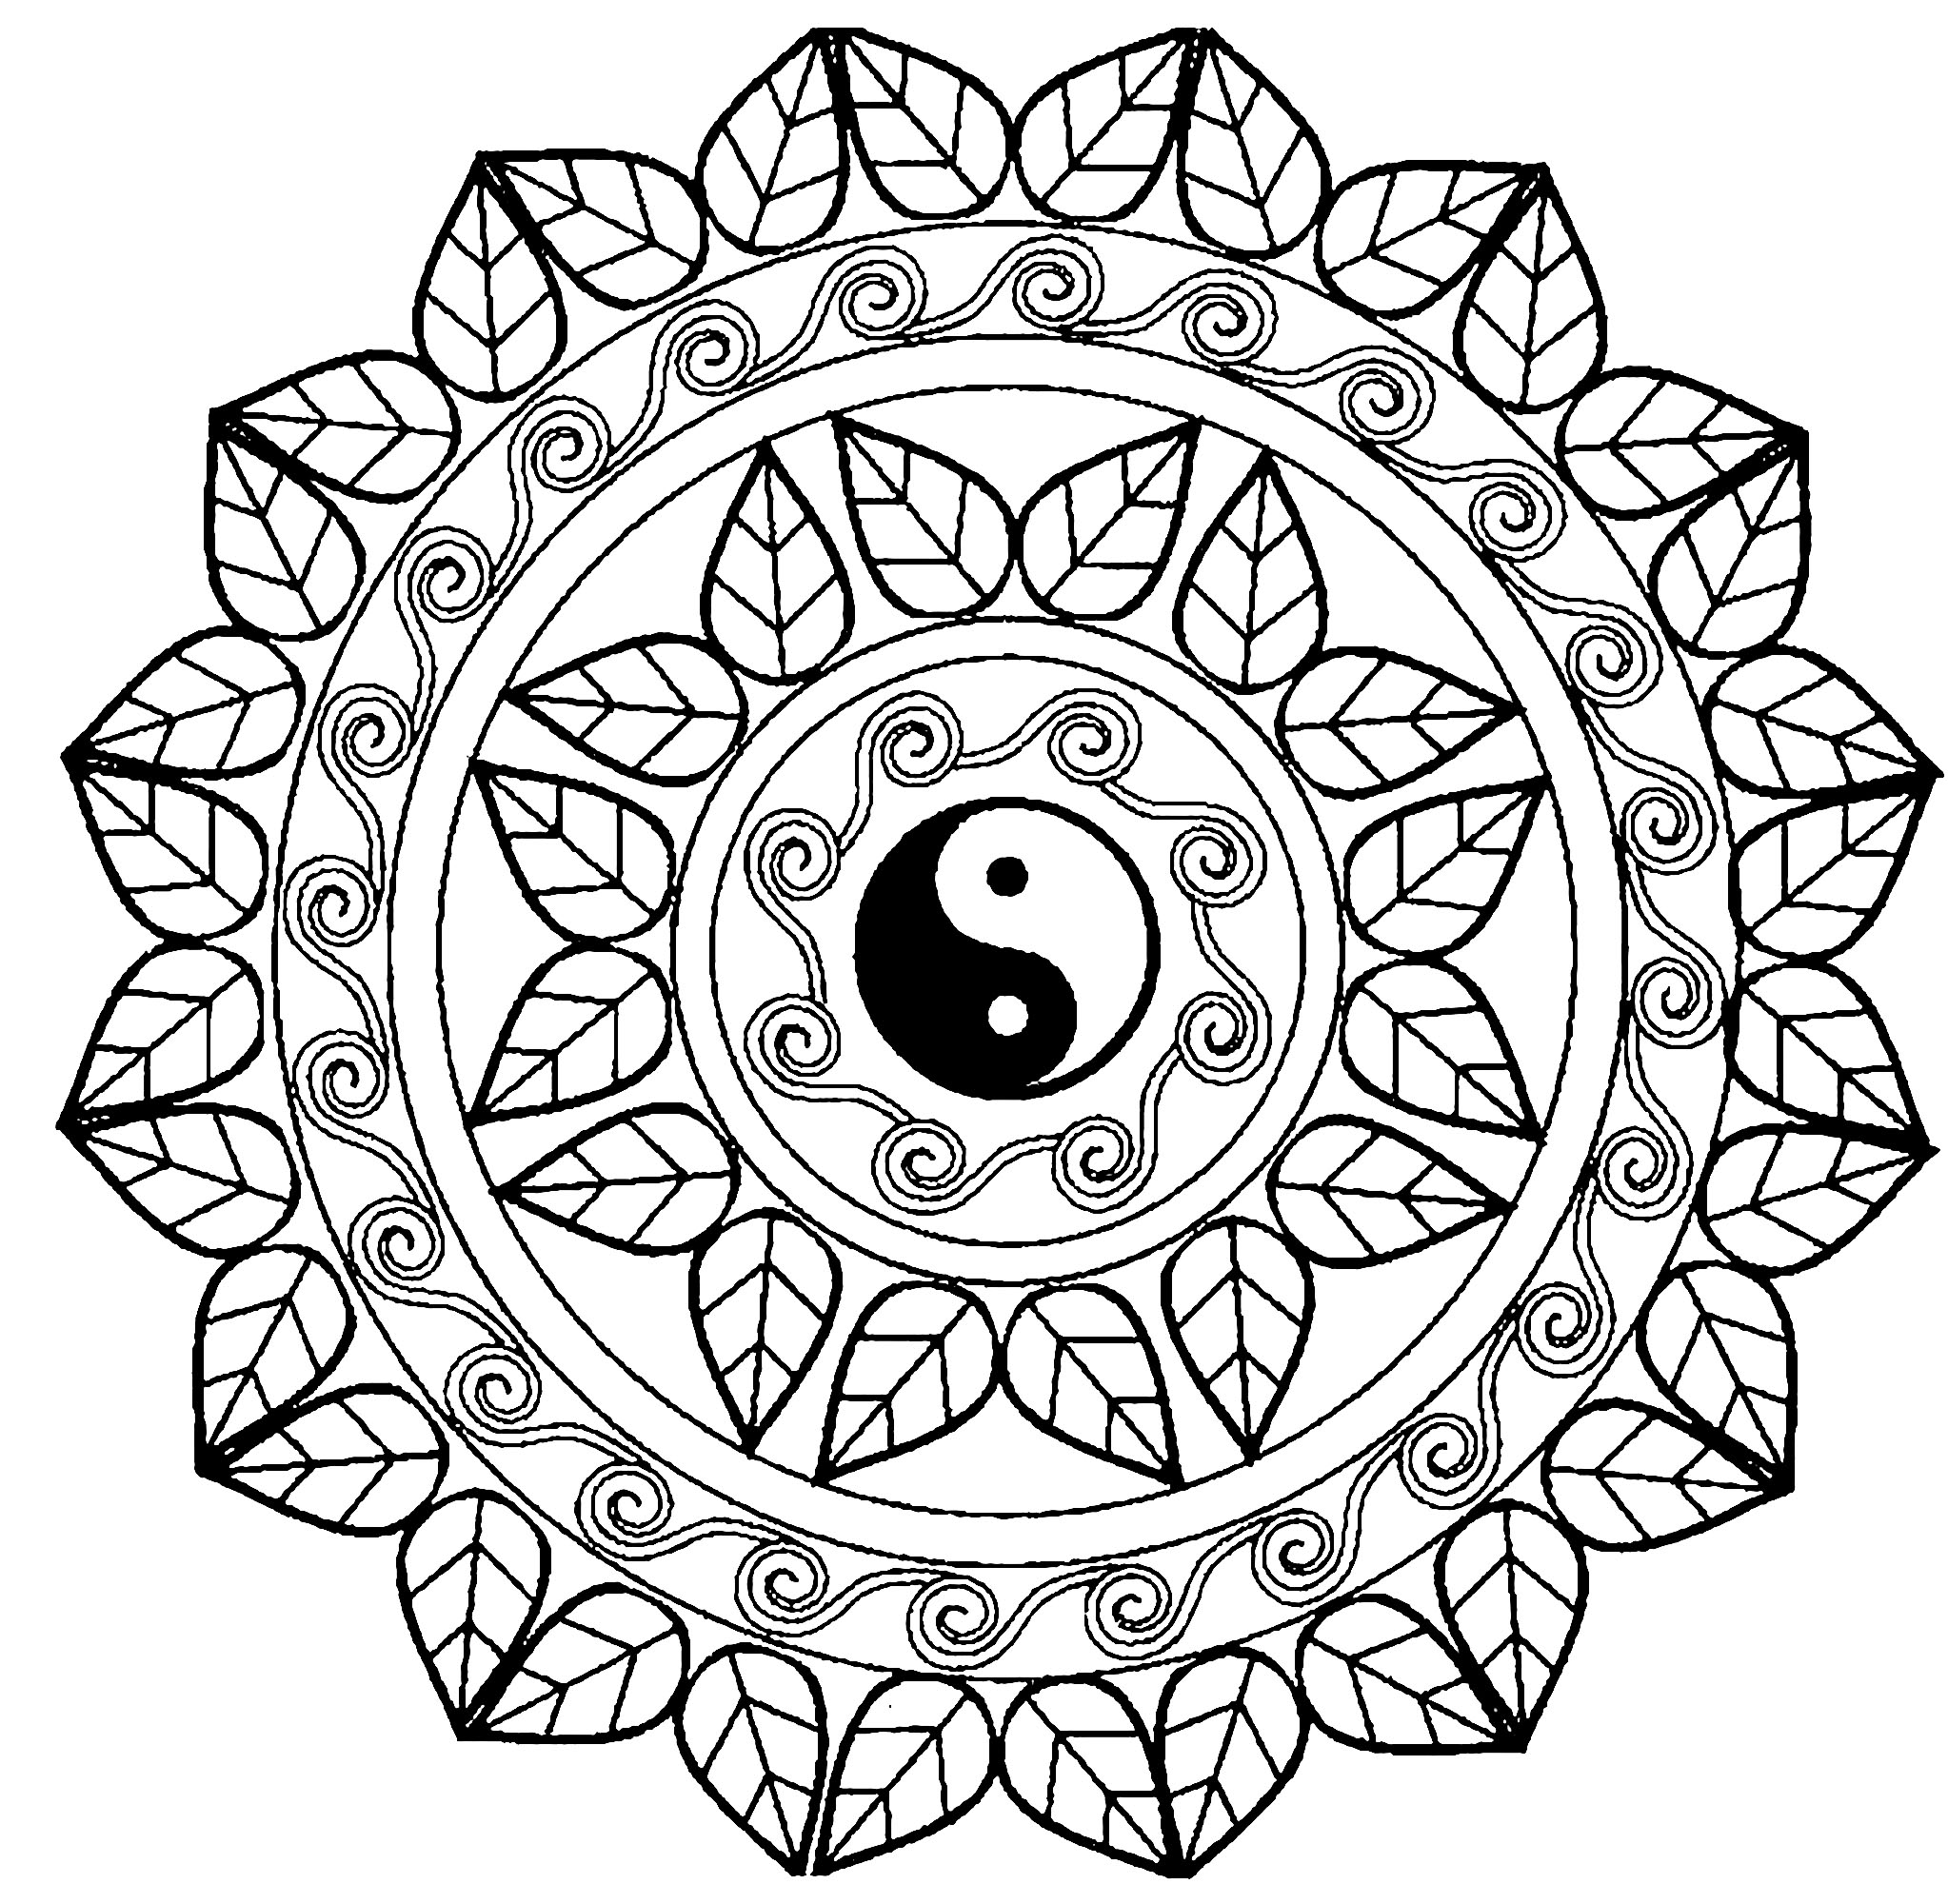 zen mandala coloring pages quotart therapyquot mandala zen anti stress mandalas 100 mandala zen coloring pages